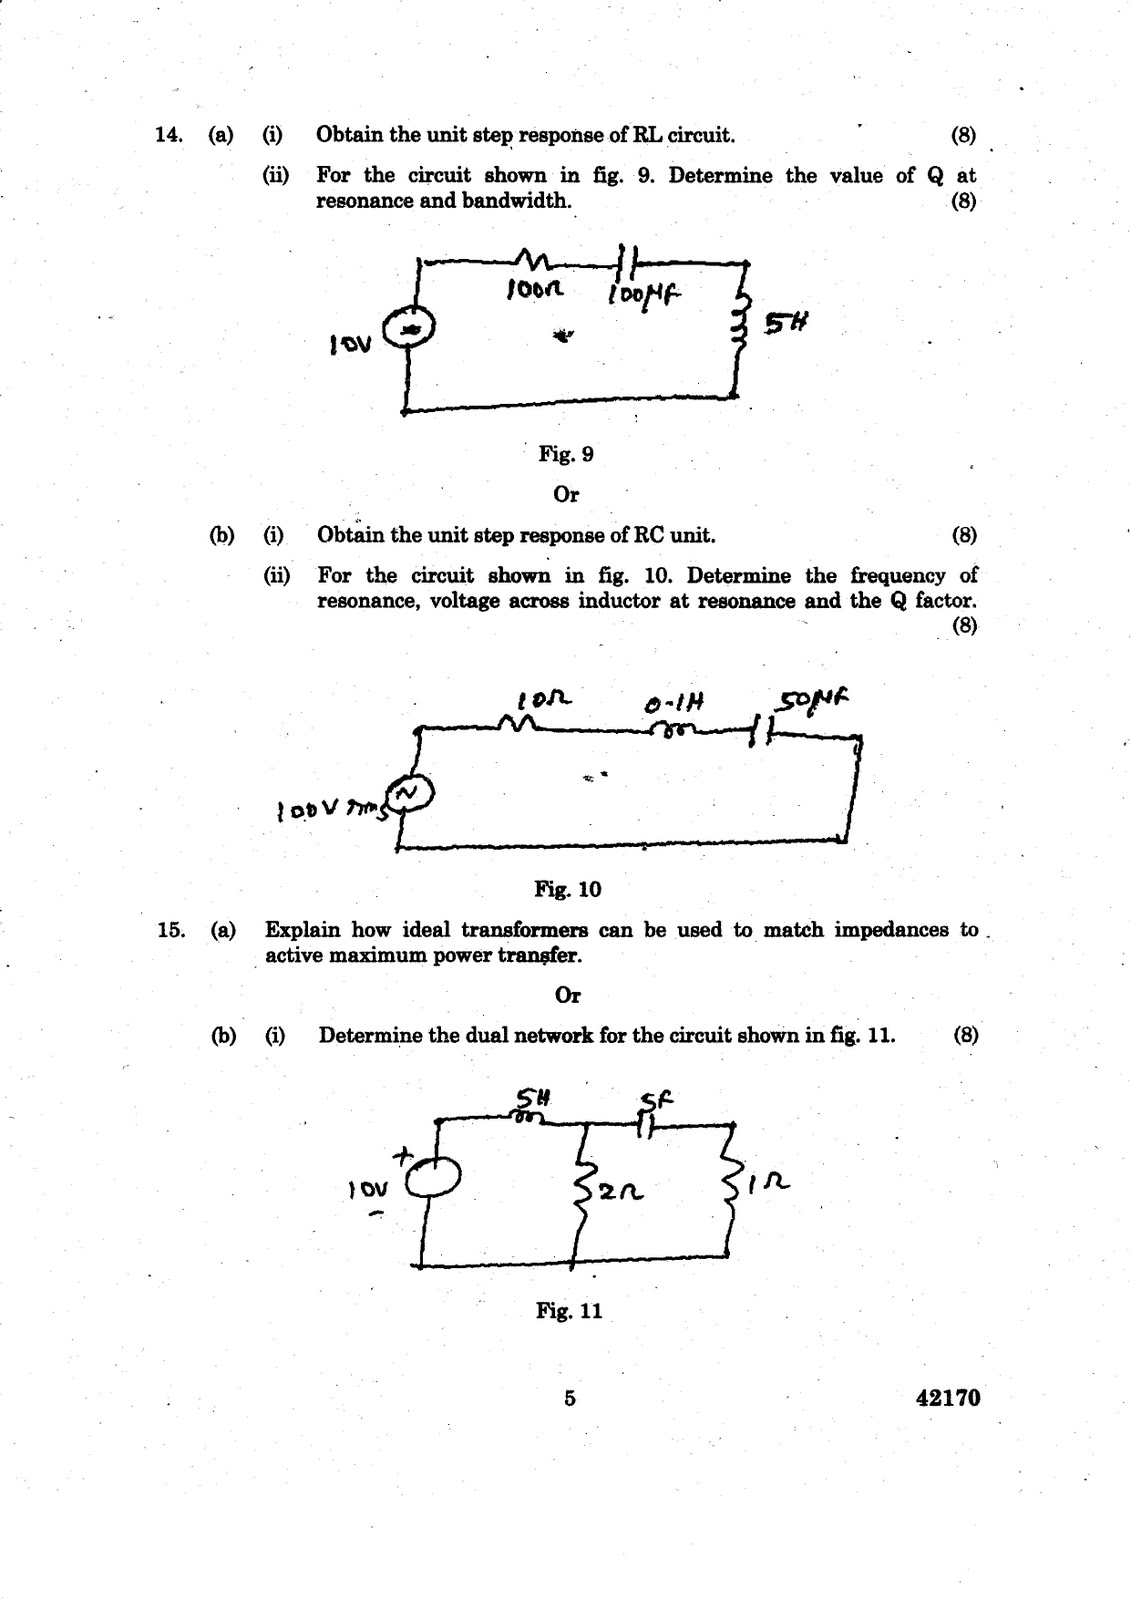 What Is Transmission >> ANNA UNIVERSITY QUESTION BANK: CIRCUIT ANALYSIS